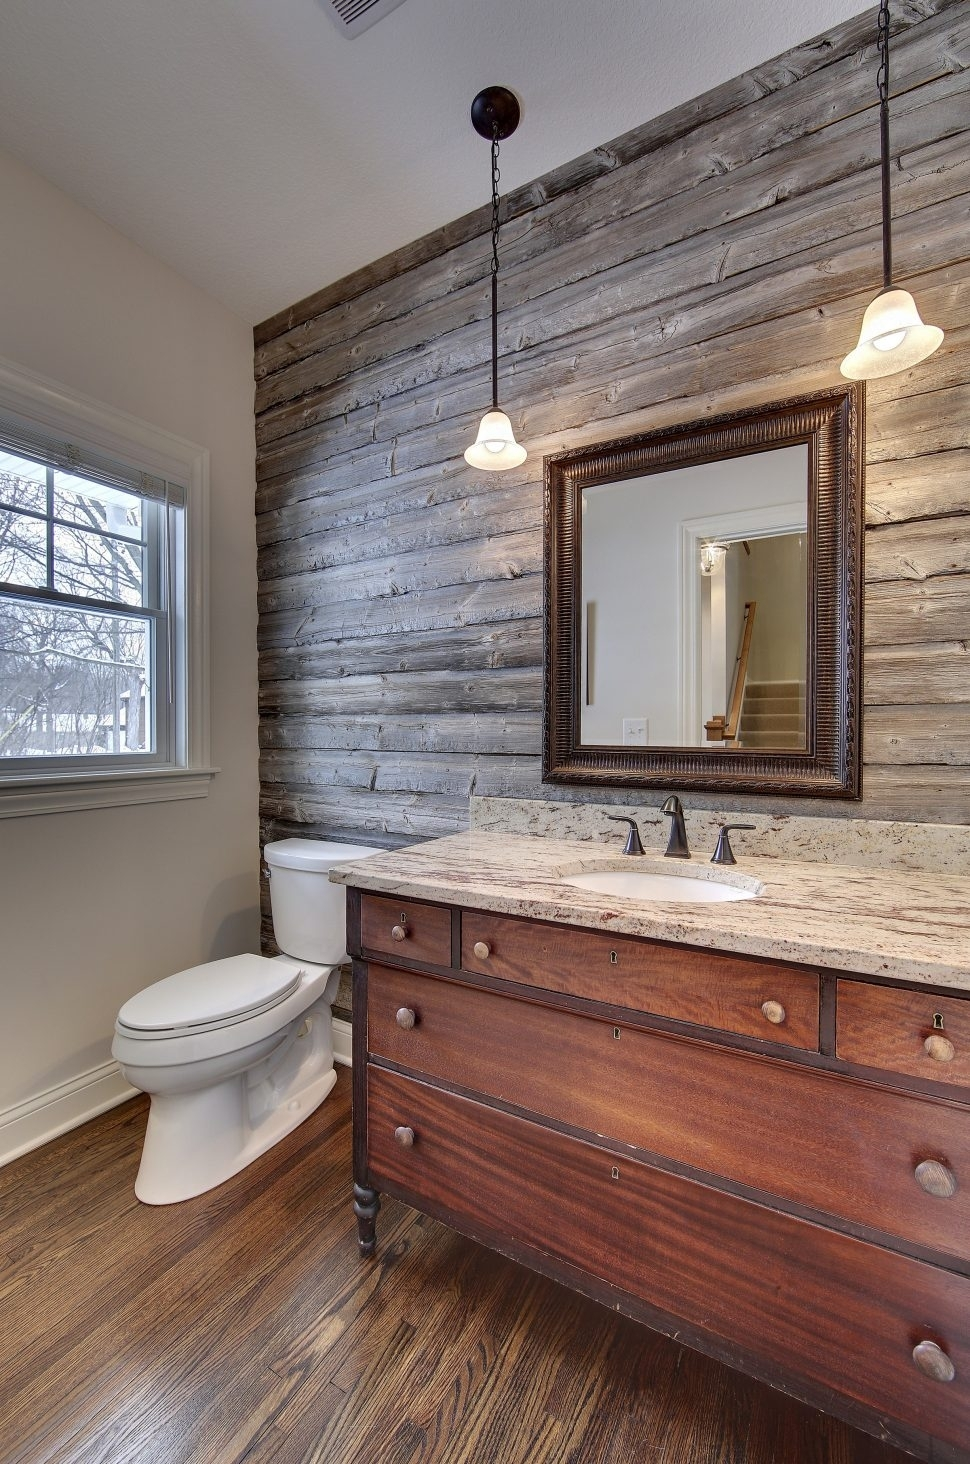 Interior Design : Powder Room With Barn Wood Accent Wall Vanity Within Most Current Antique Wall Accents (View 11 of 15)